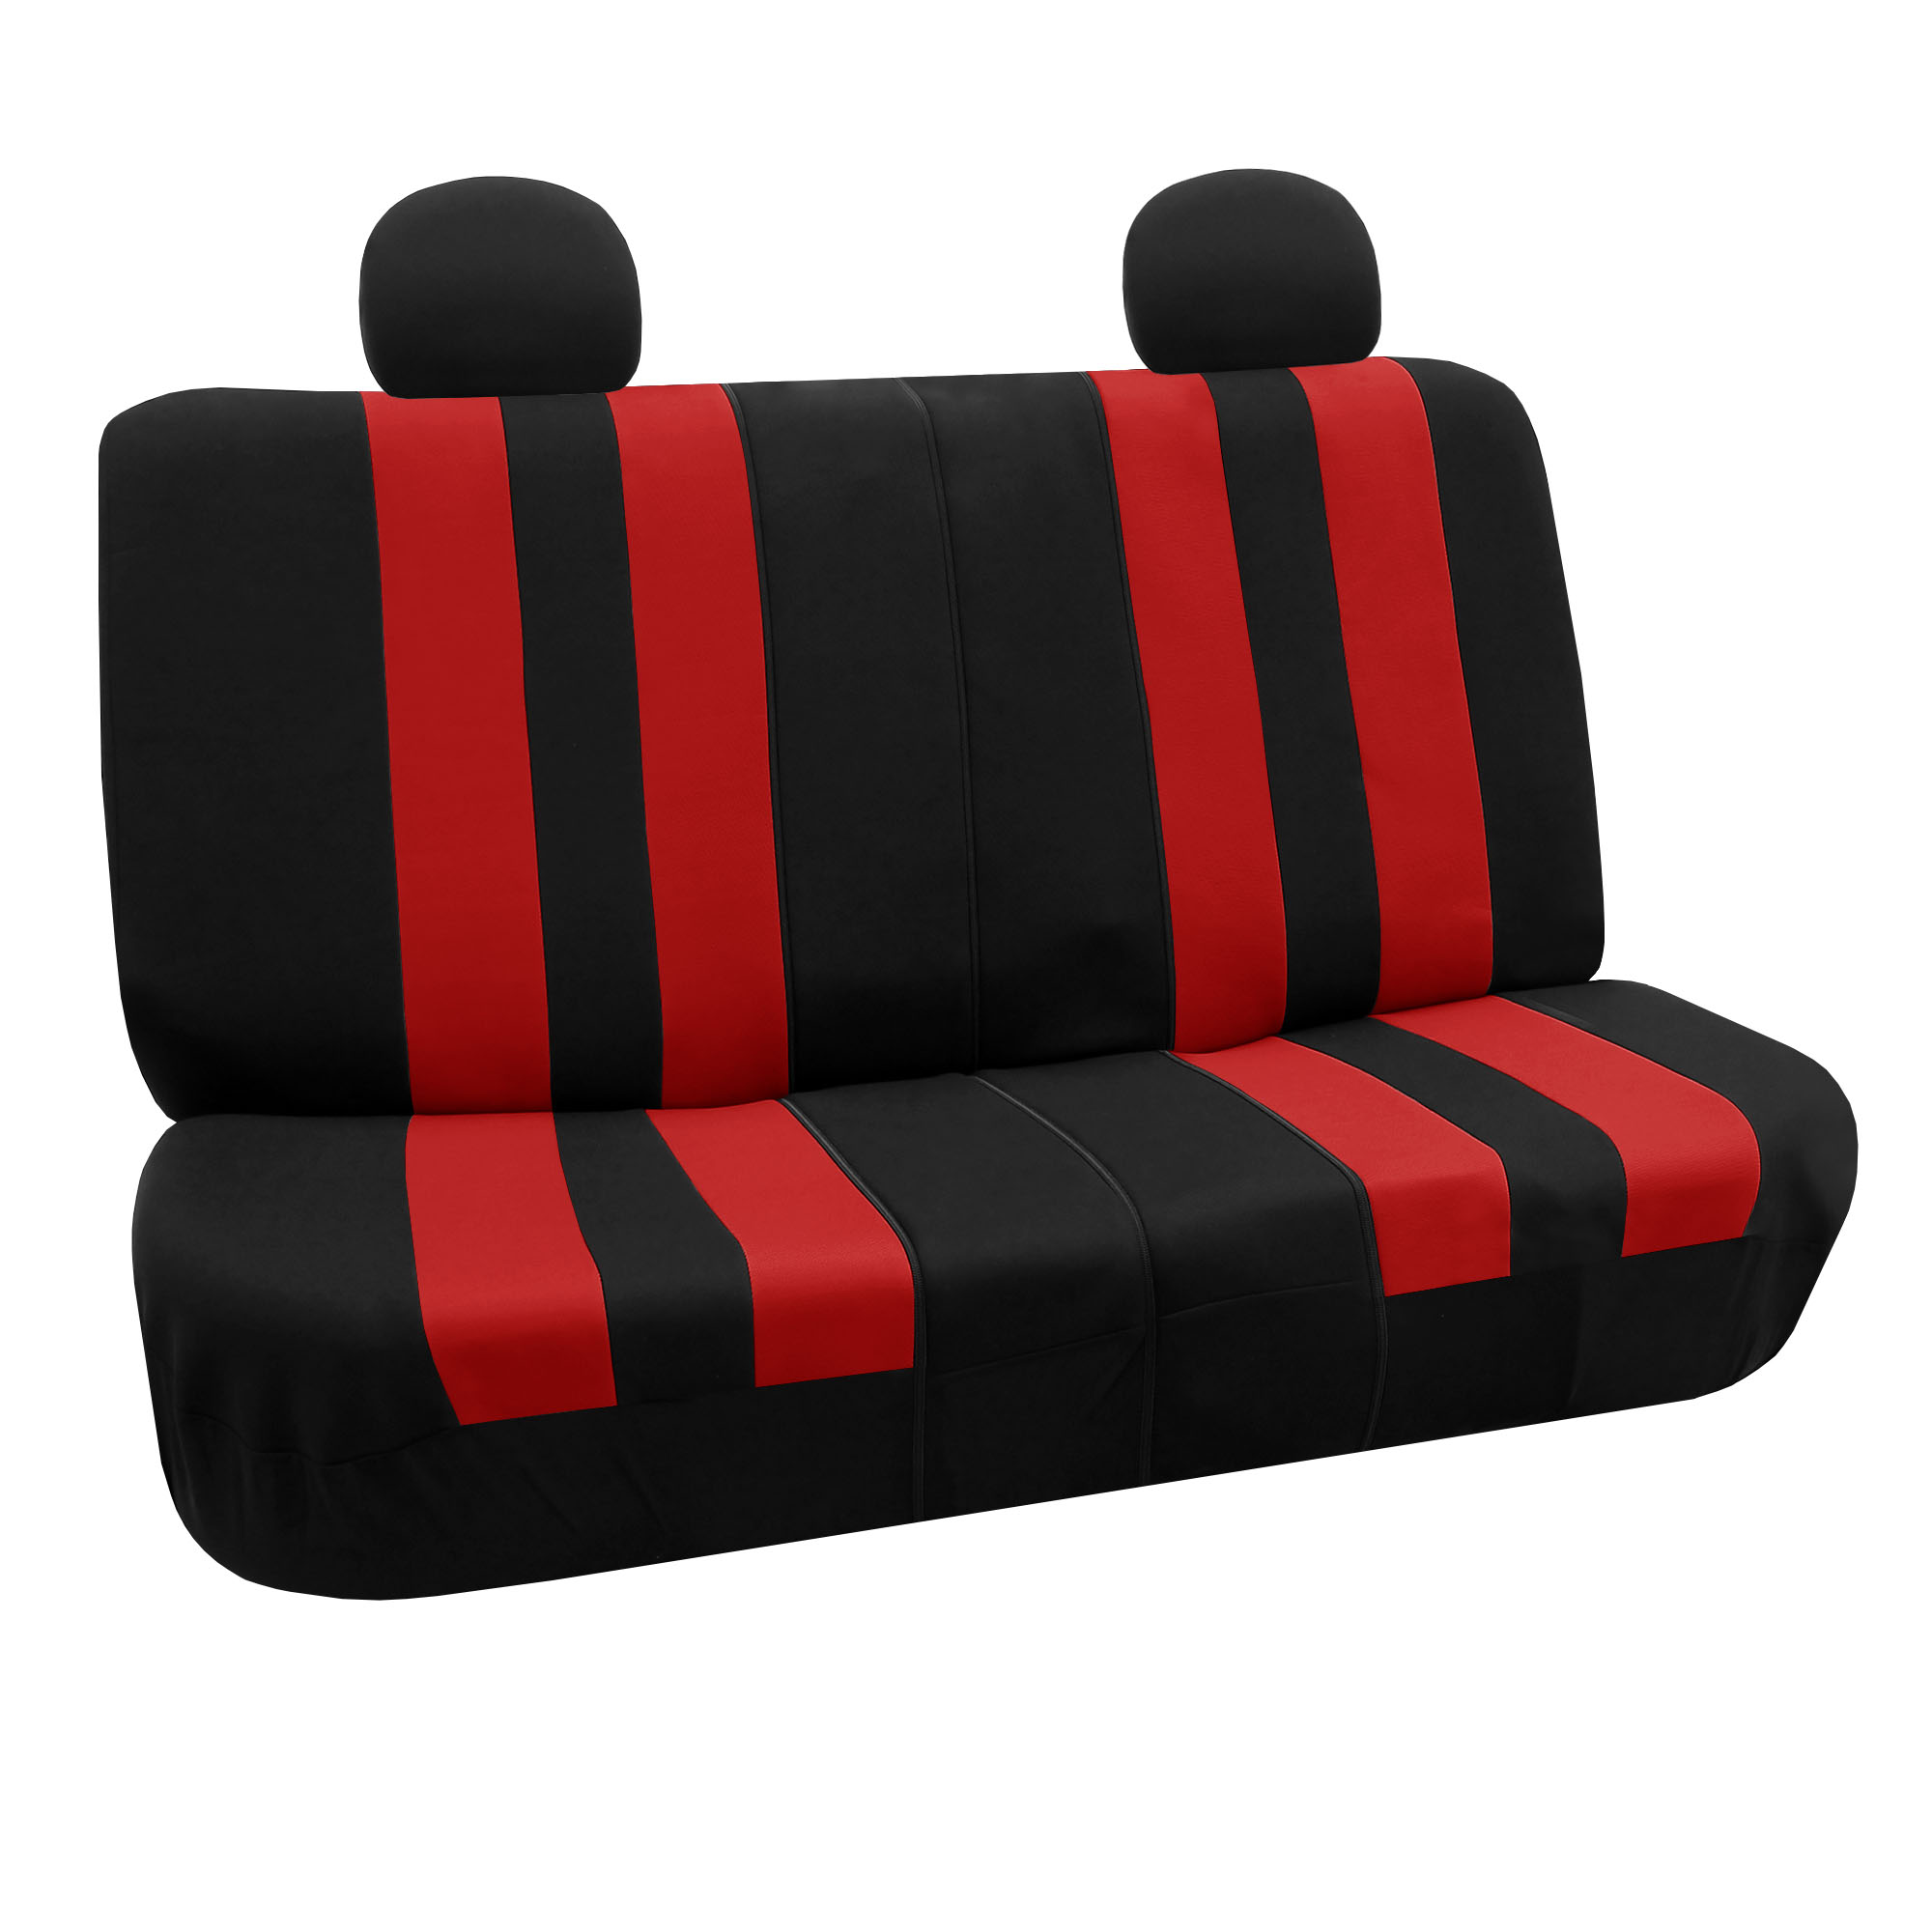 Car Seat Cover Set For Auto Car SUV Van Airbag Split Bench